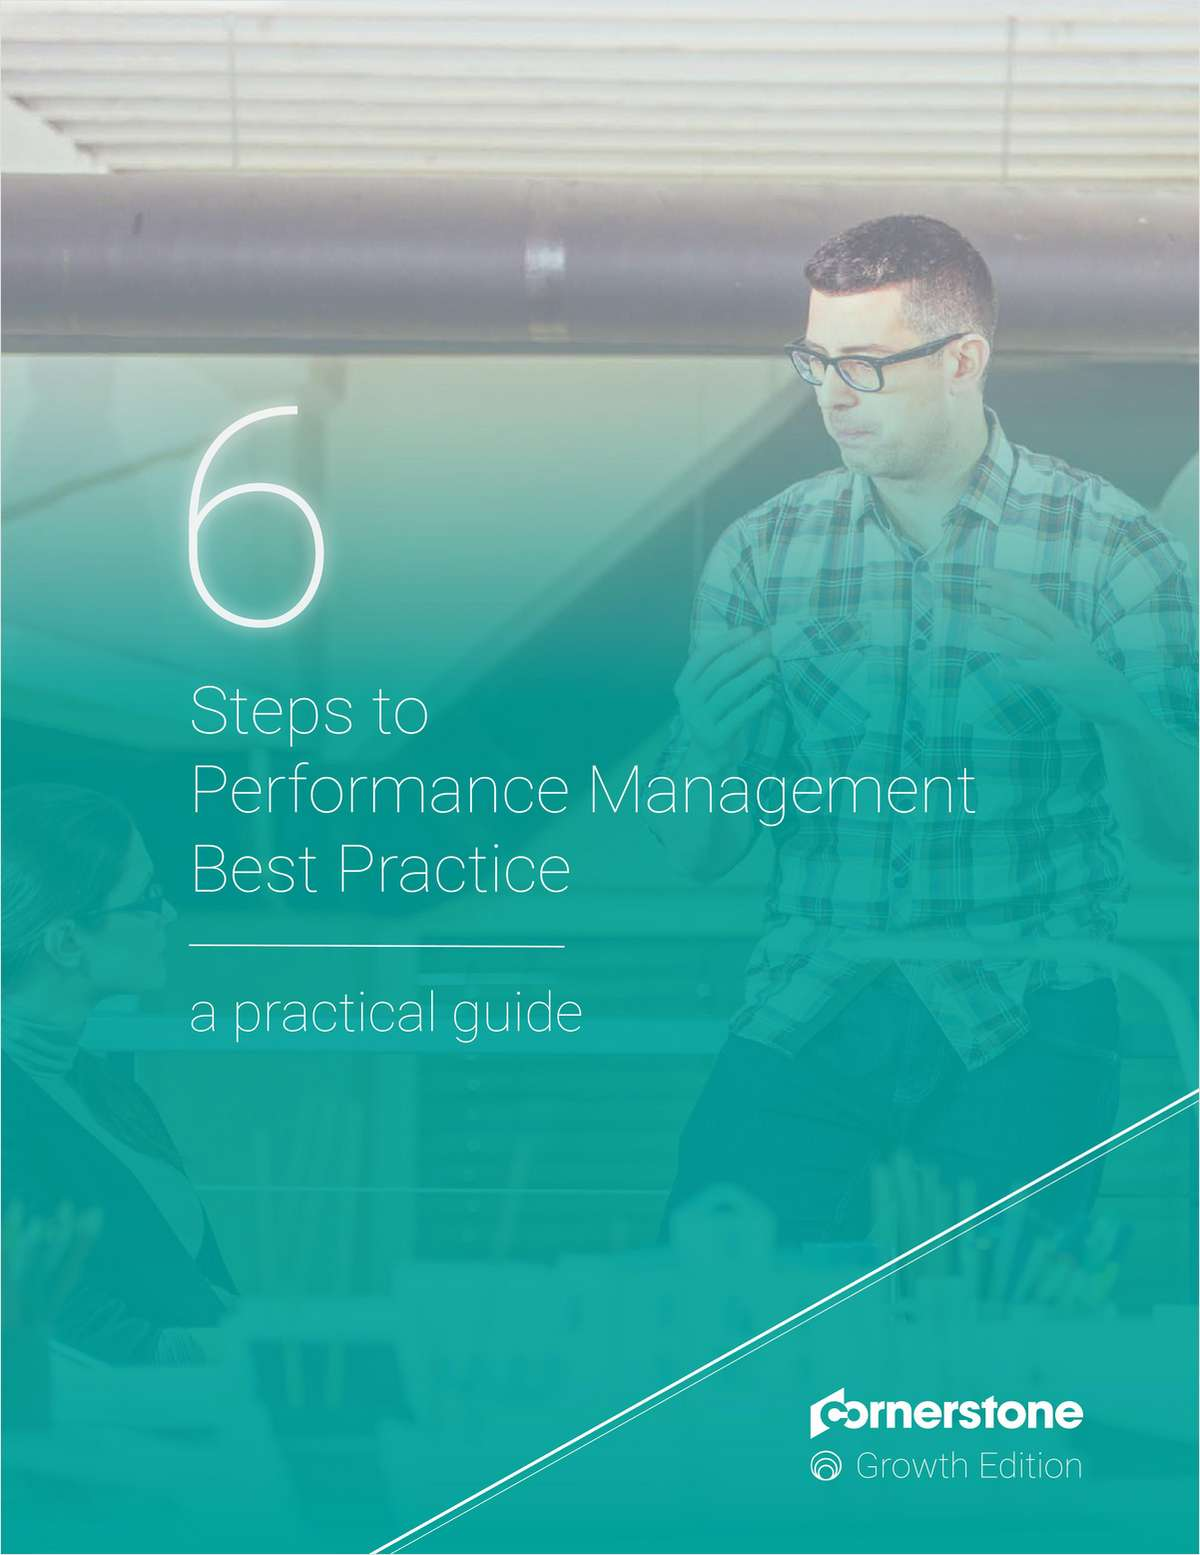 6 Steps to Performance Management Best Practices